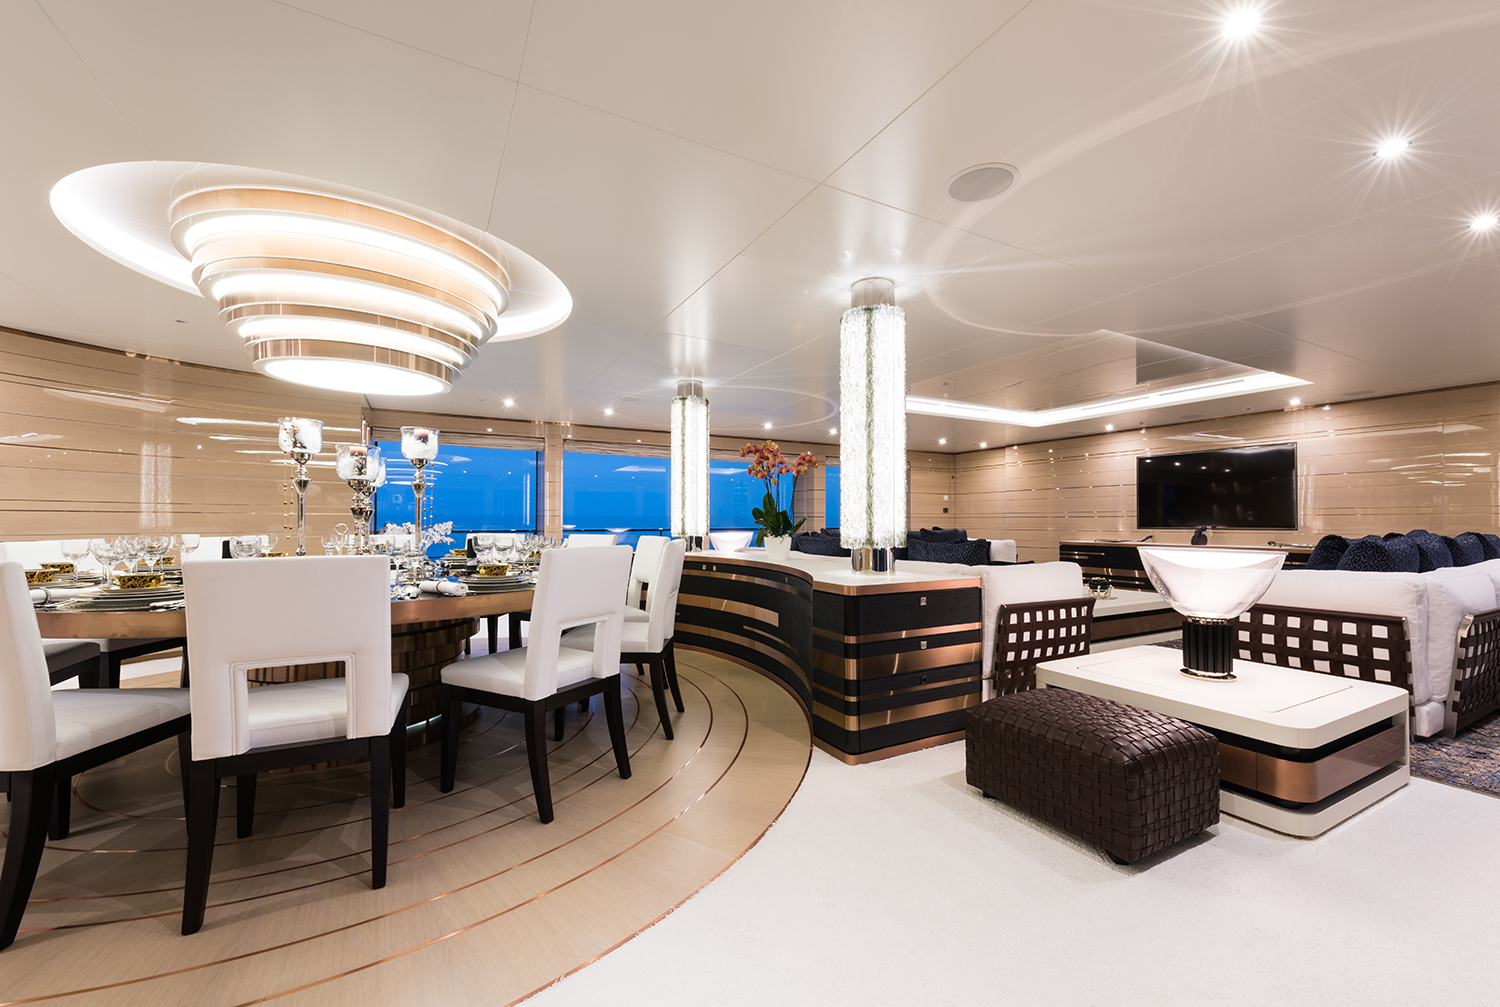 Main Saloon With Dining And Lounging Area